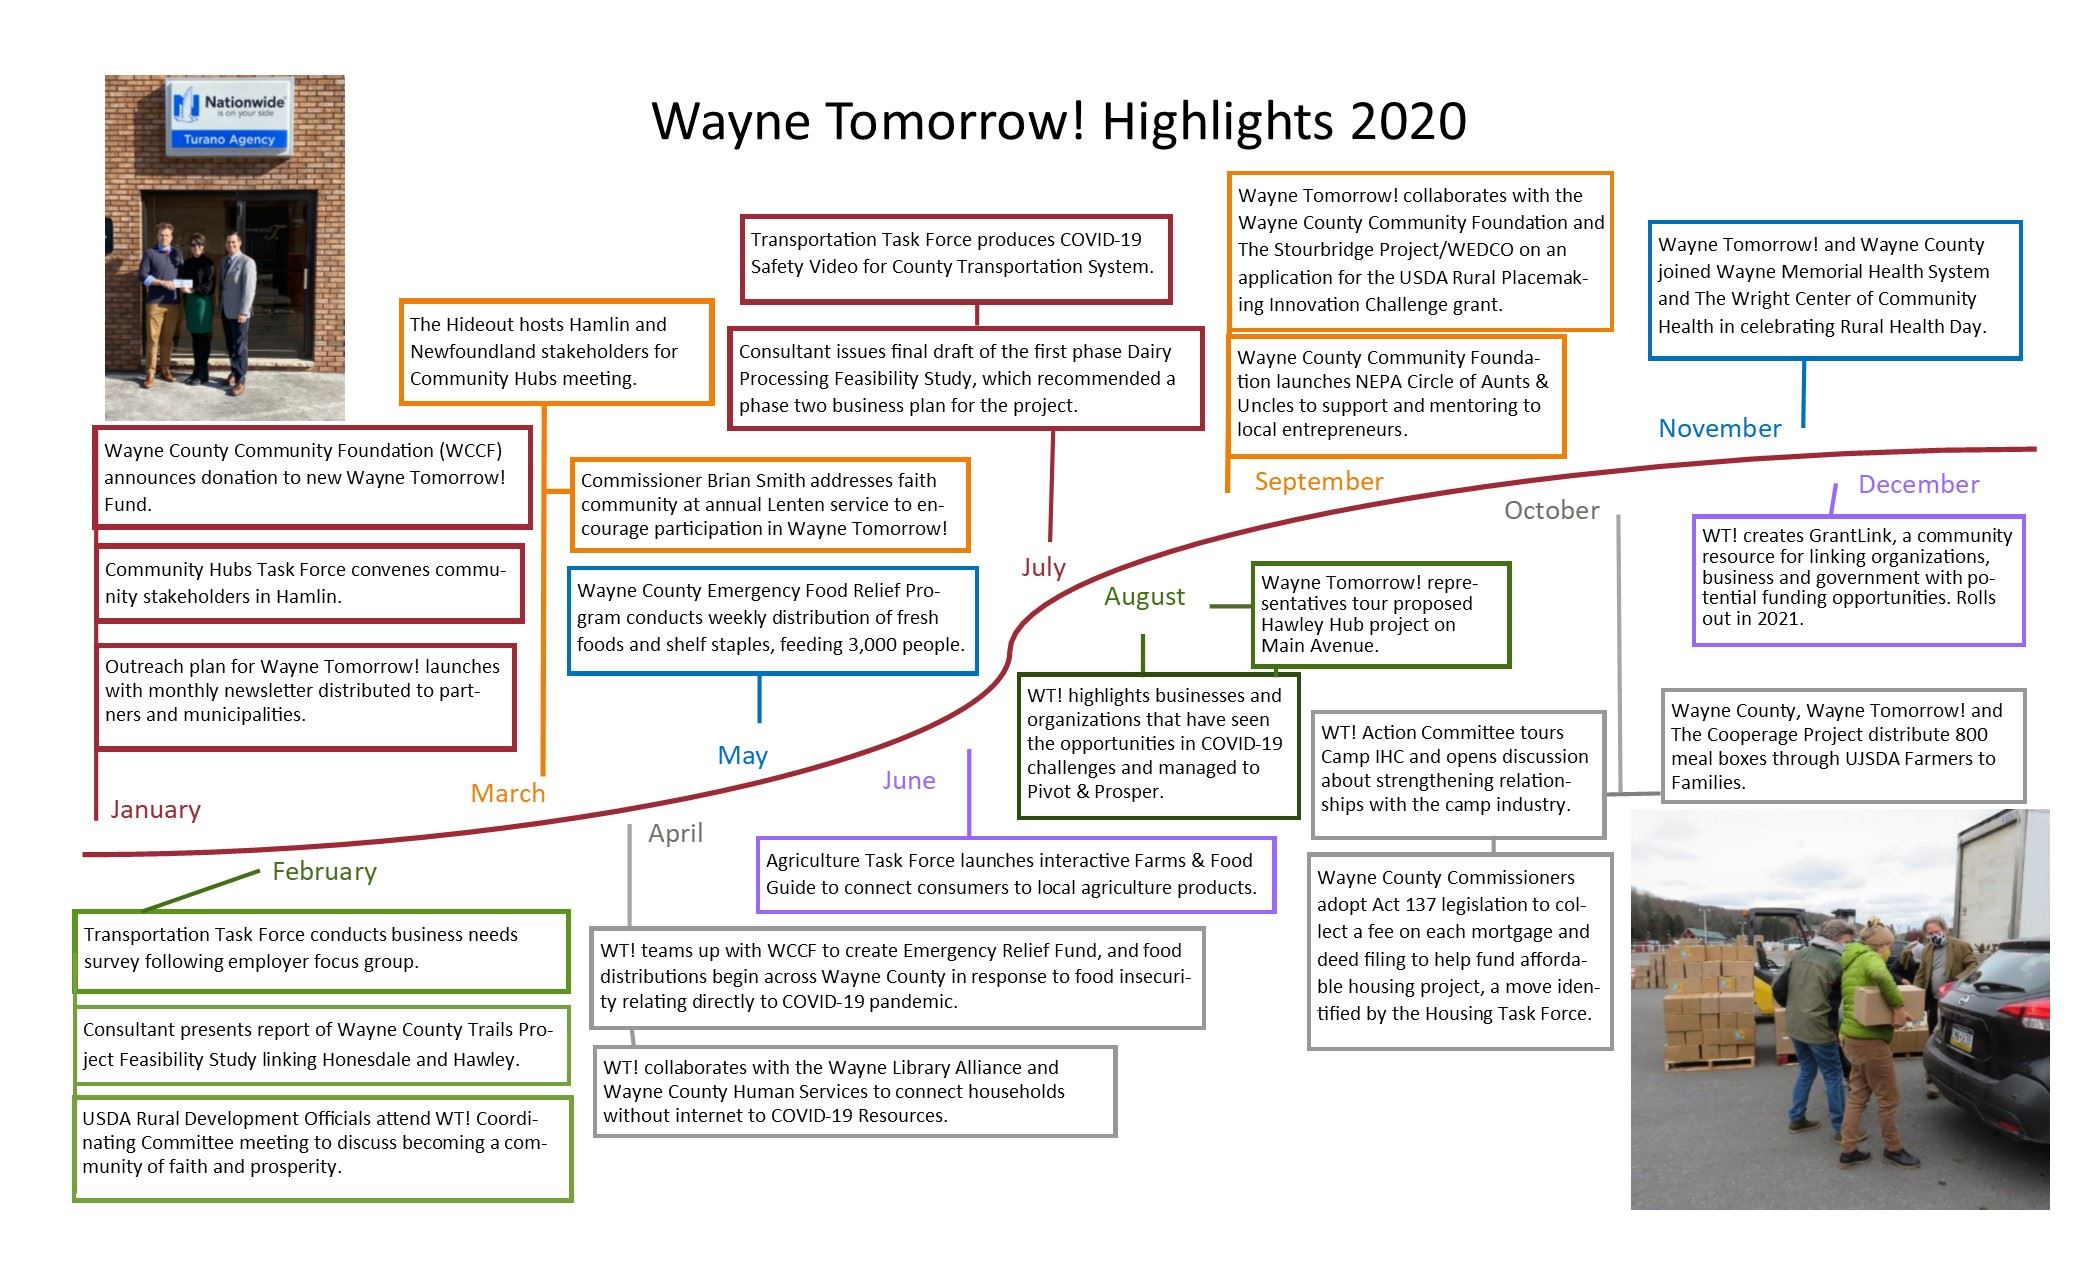 An image of a timeline featuring the accomplishments of the Wayne Tomorrow! Initiative in 2020.